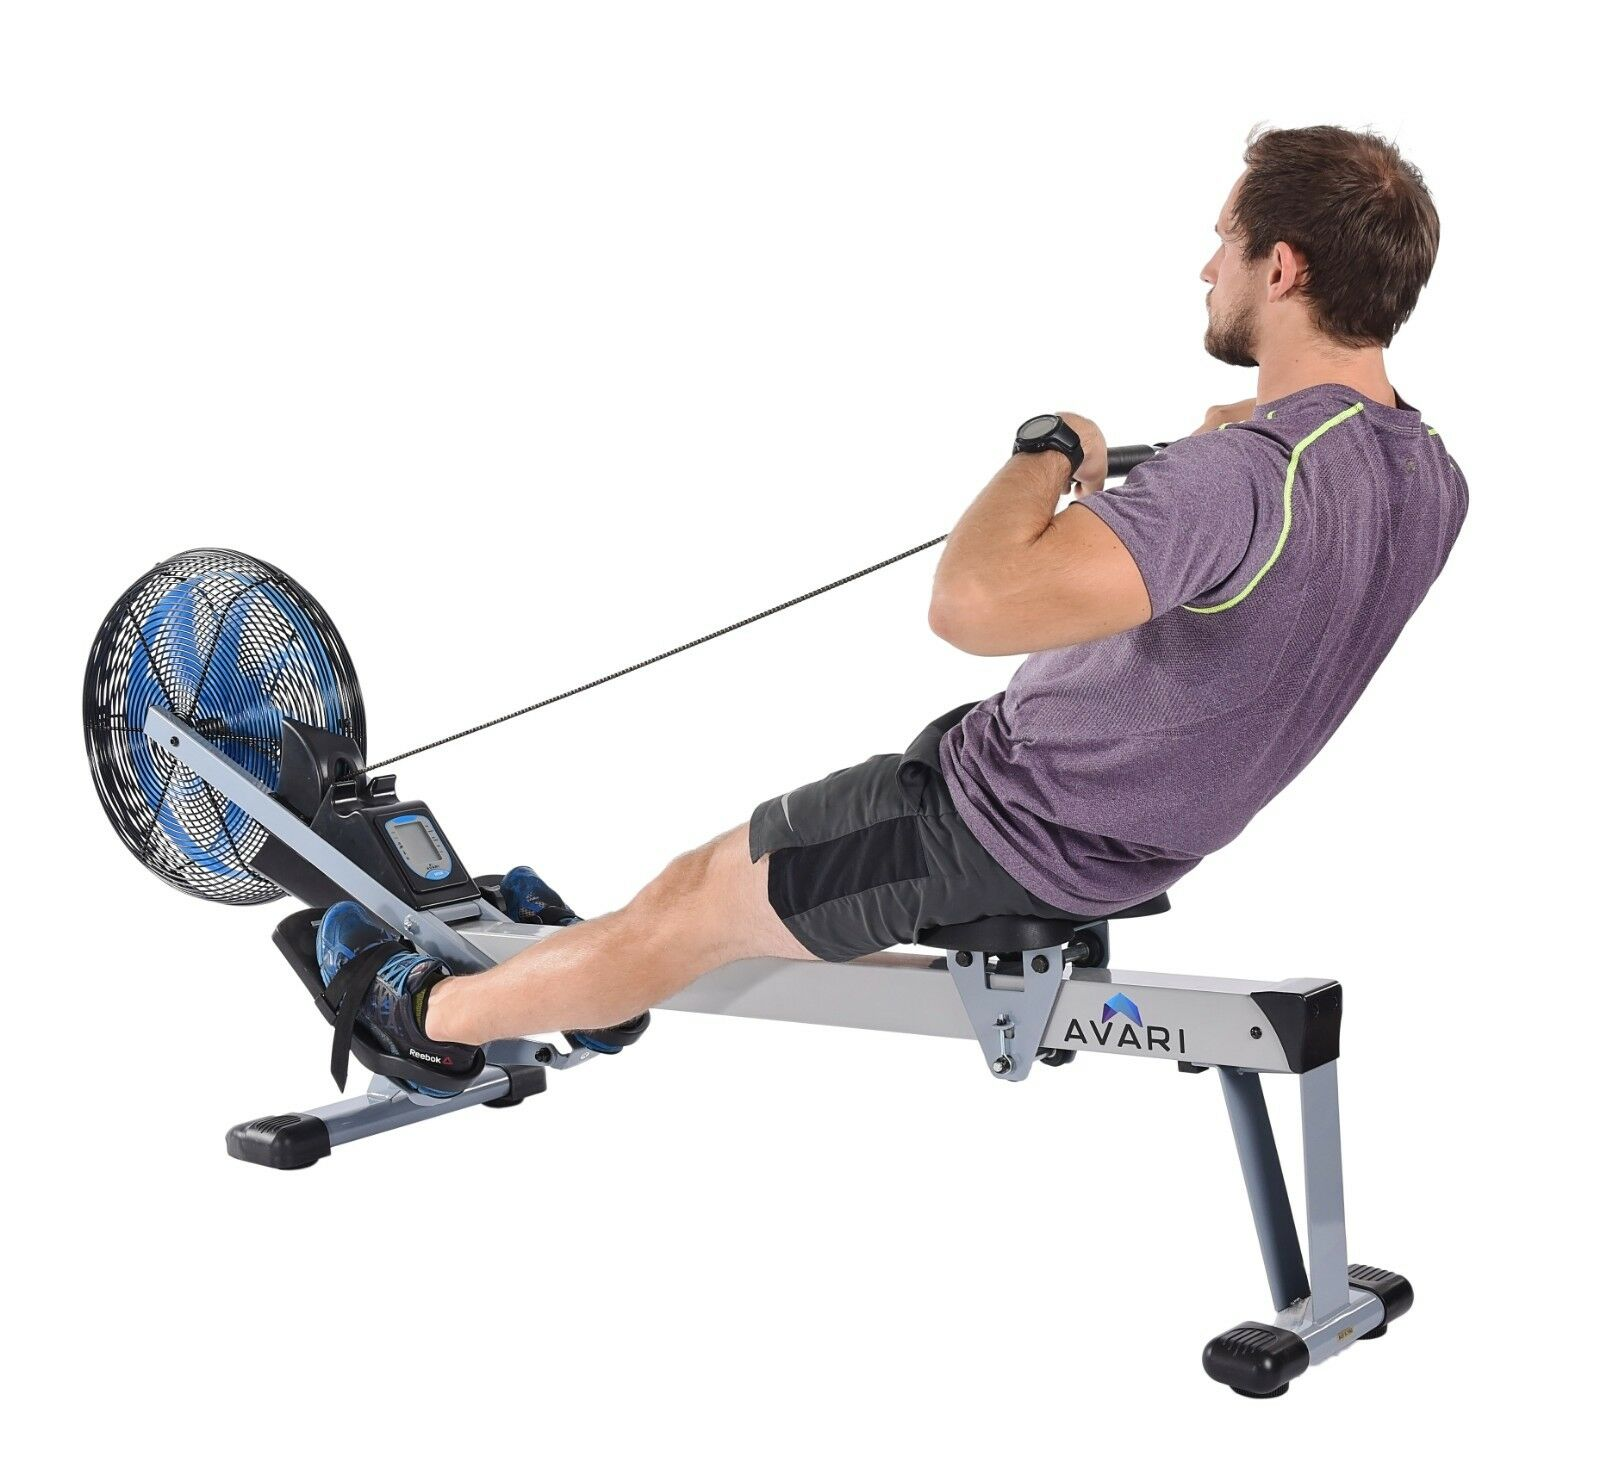 Avari Air Resistance Rowing Machine 695 A350-695